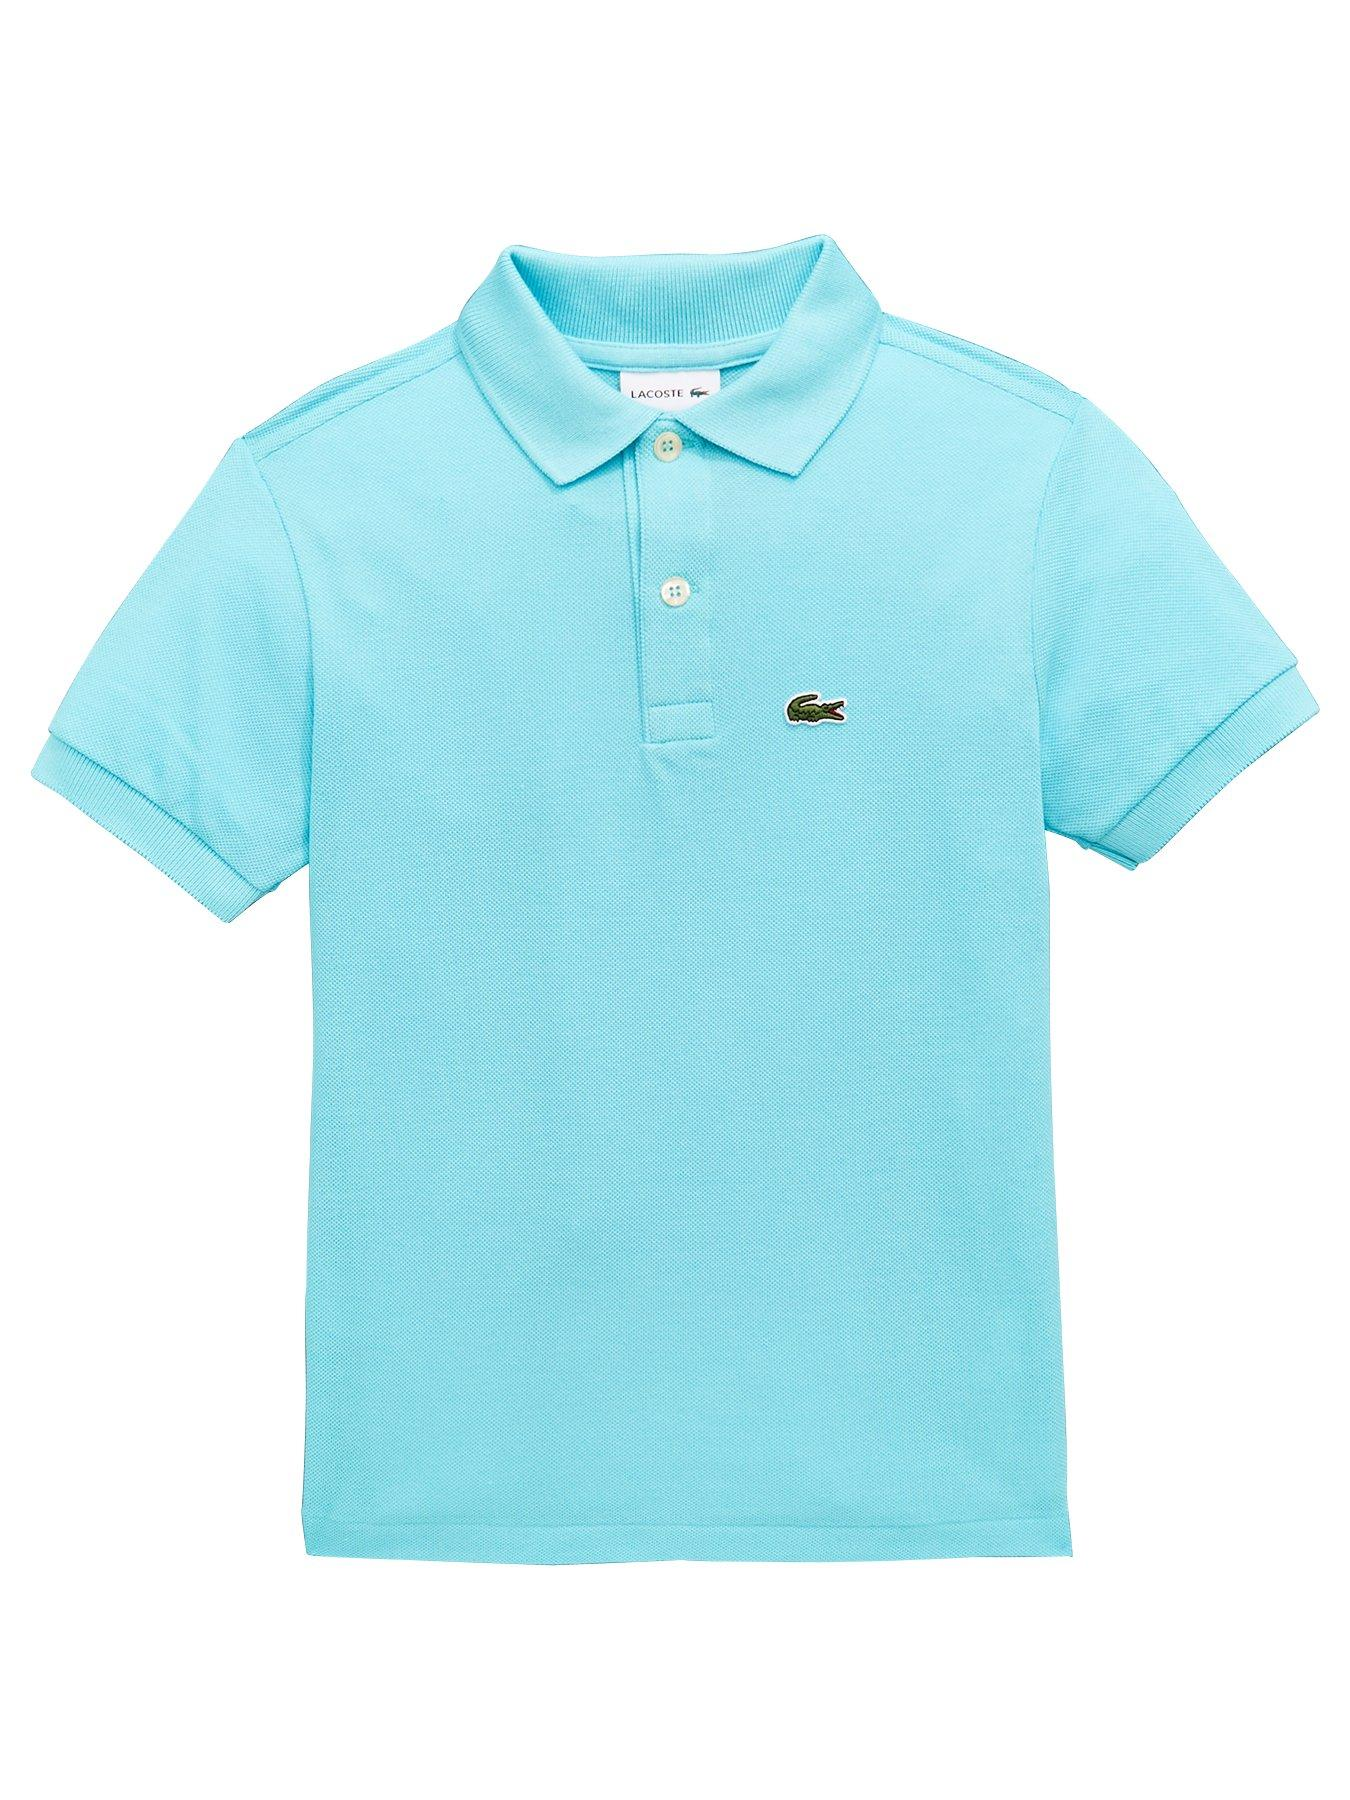 Baby 1314 Years Lacoste Www amp; Boys Clothes Child qFYUqg